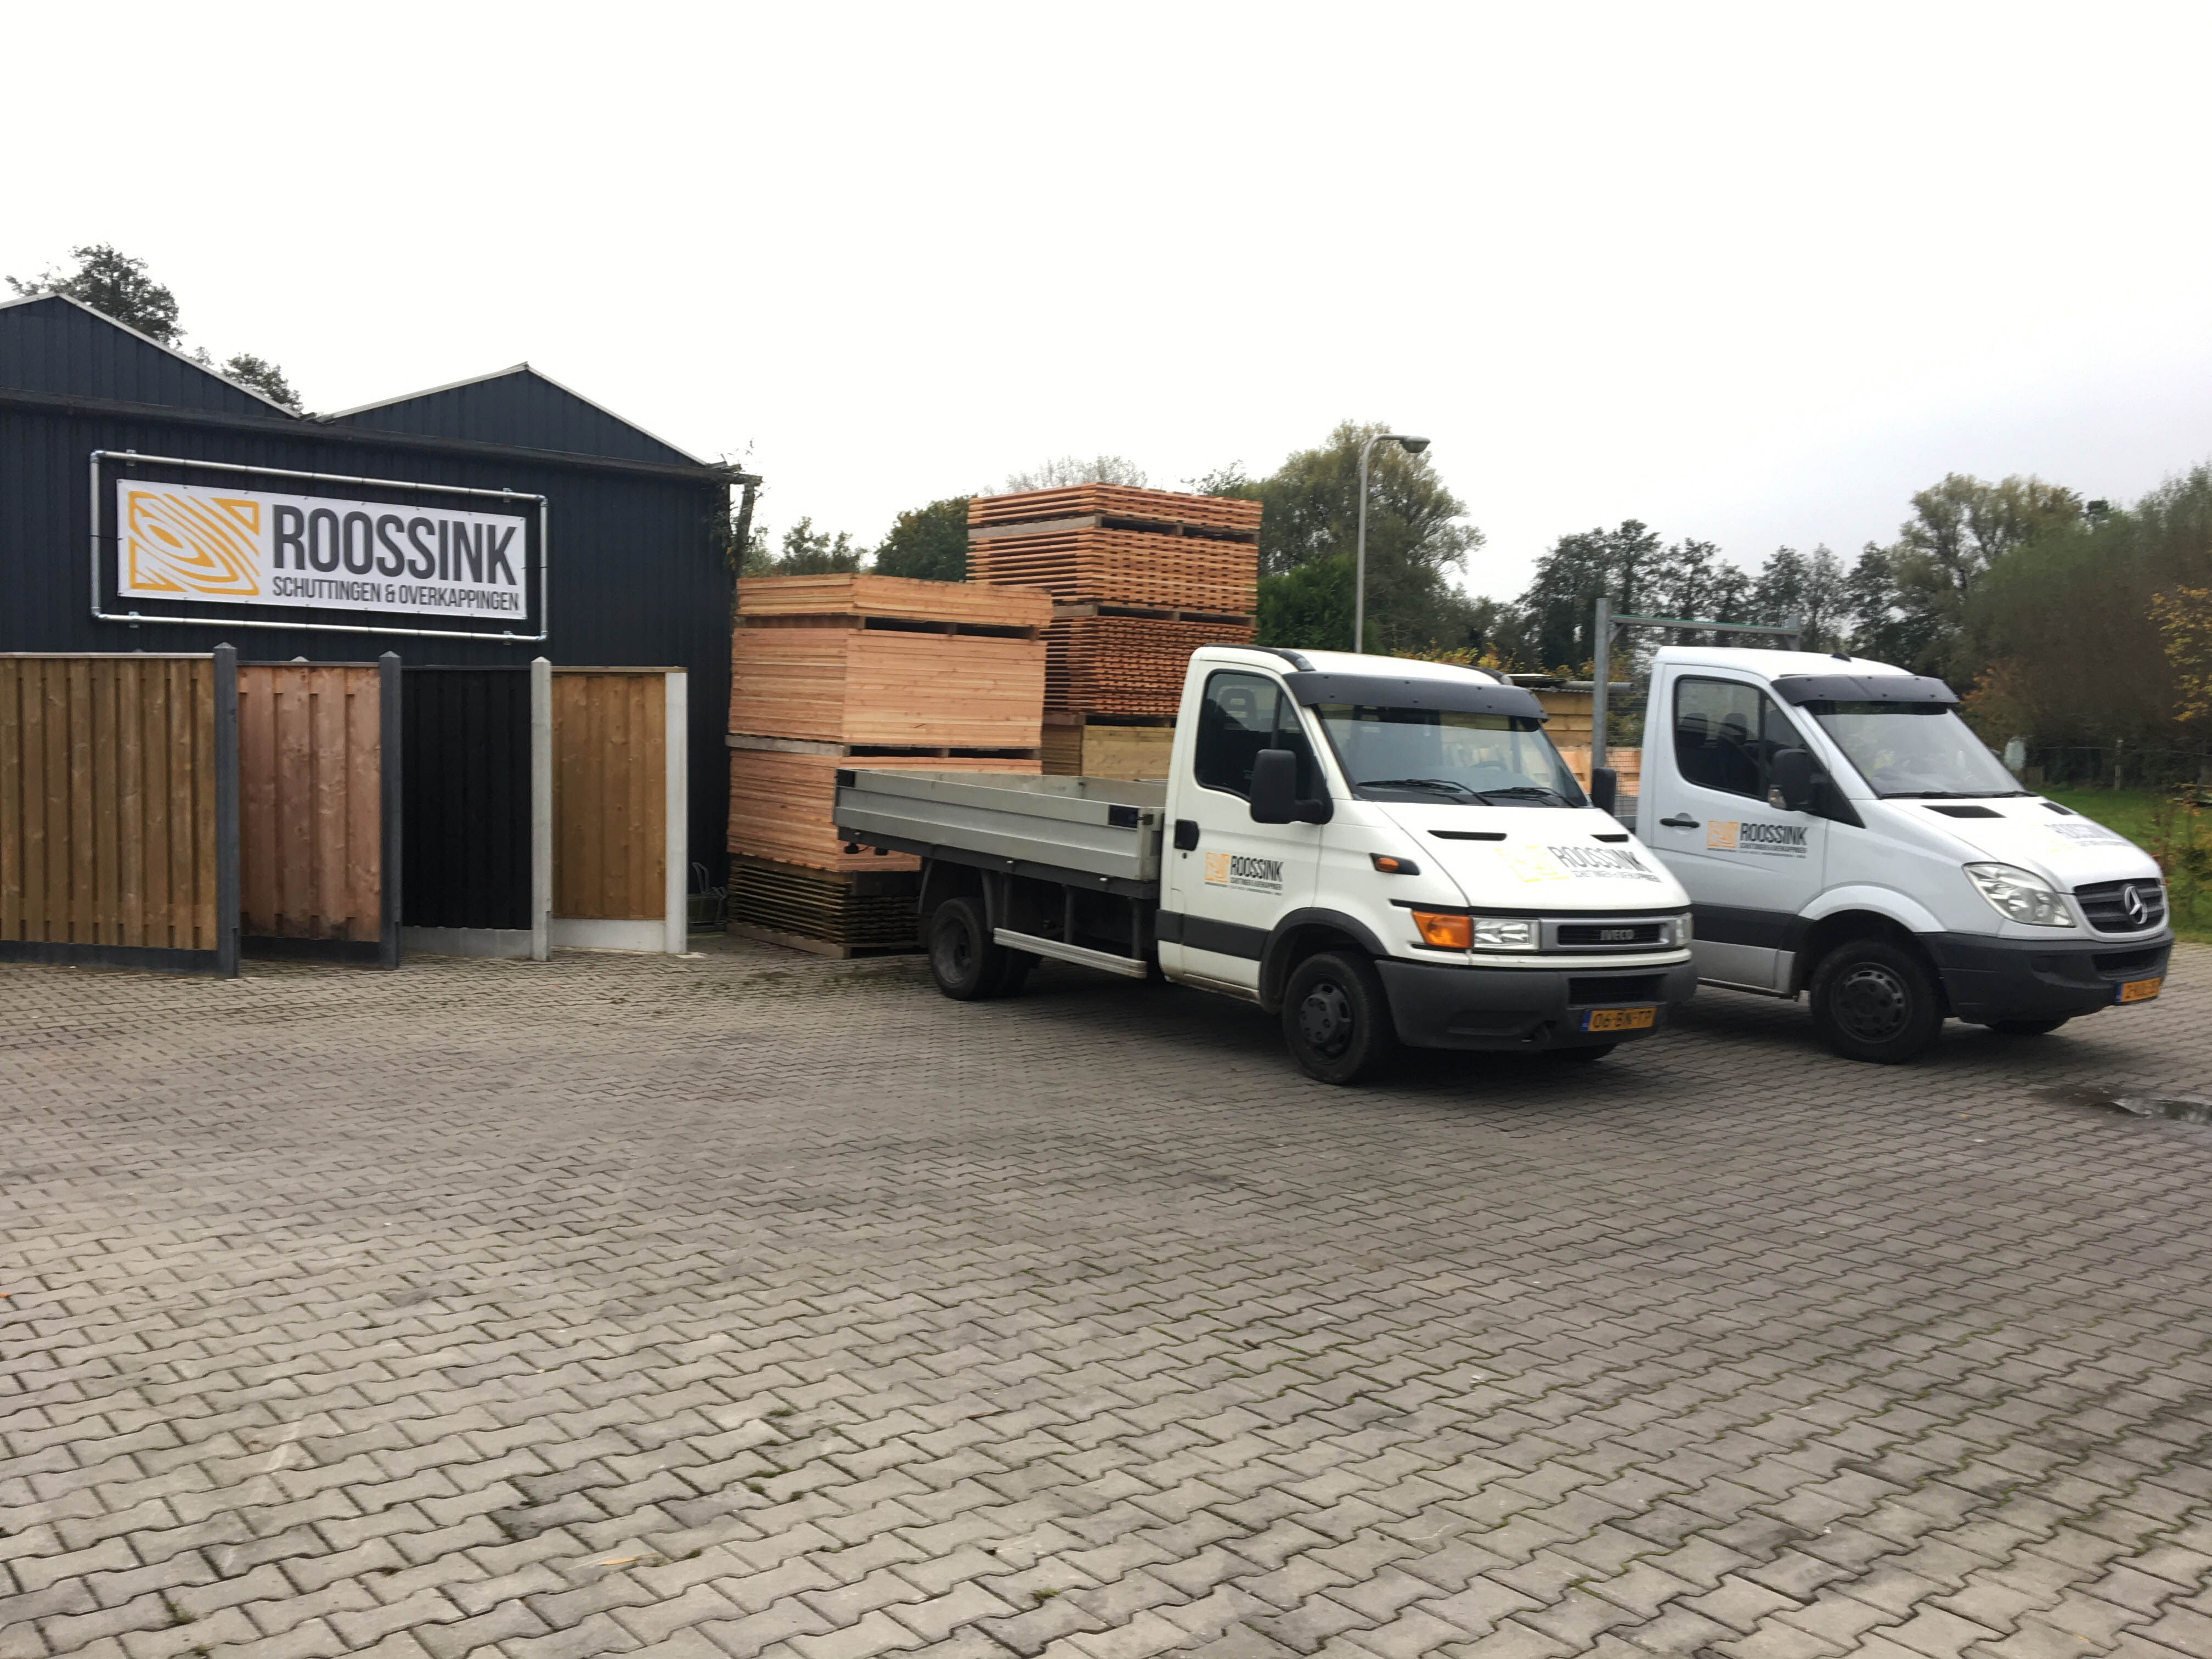 Roossink Schuttingen & Overkappingen Contact